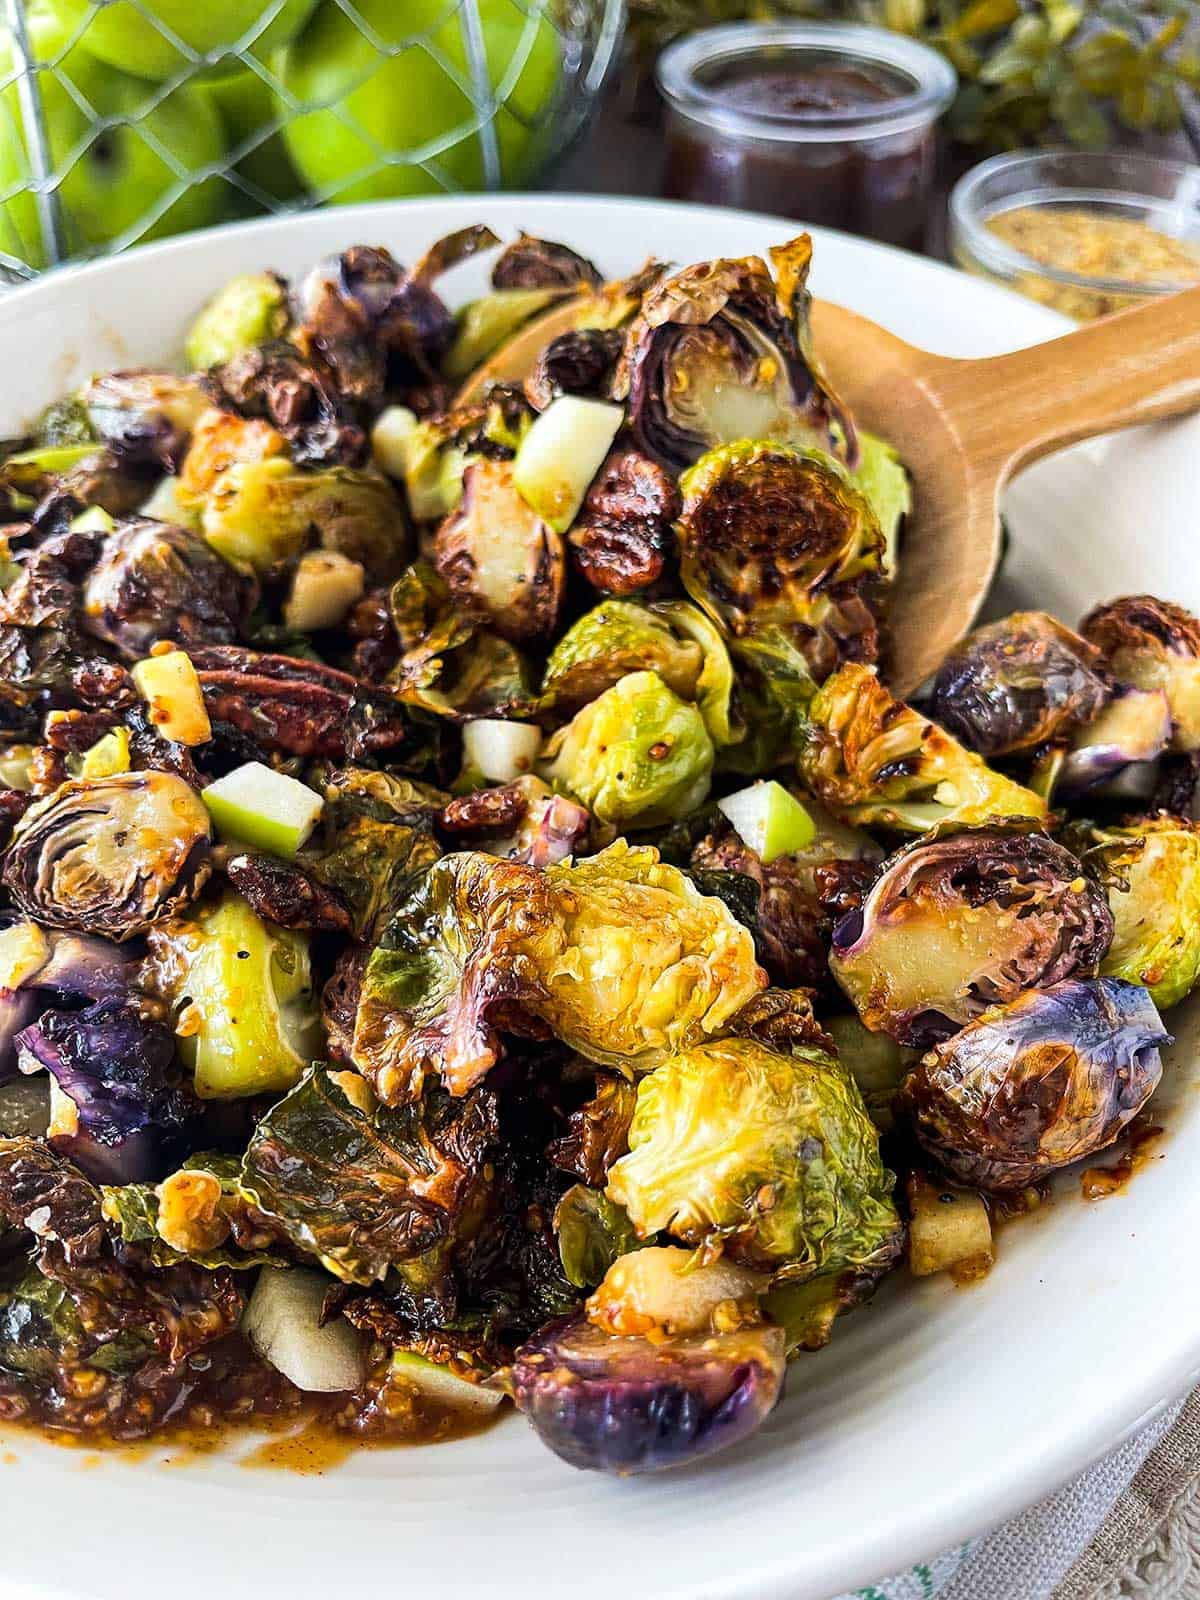 Upclose image of purple and green brussels sprouts with an apple butter dijon glaze topped with diced apples and pecans.